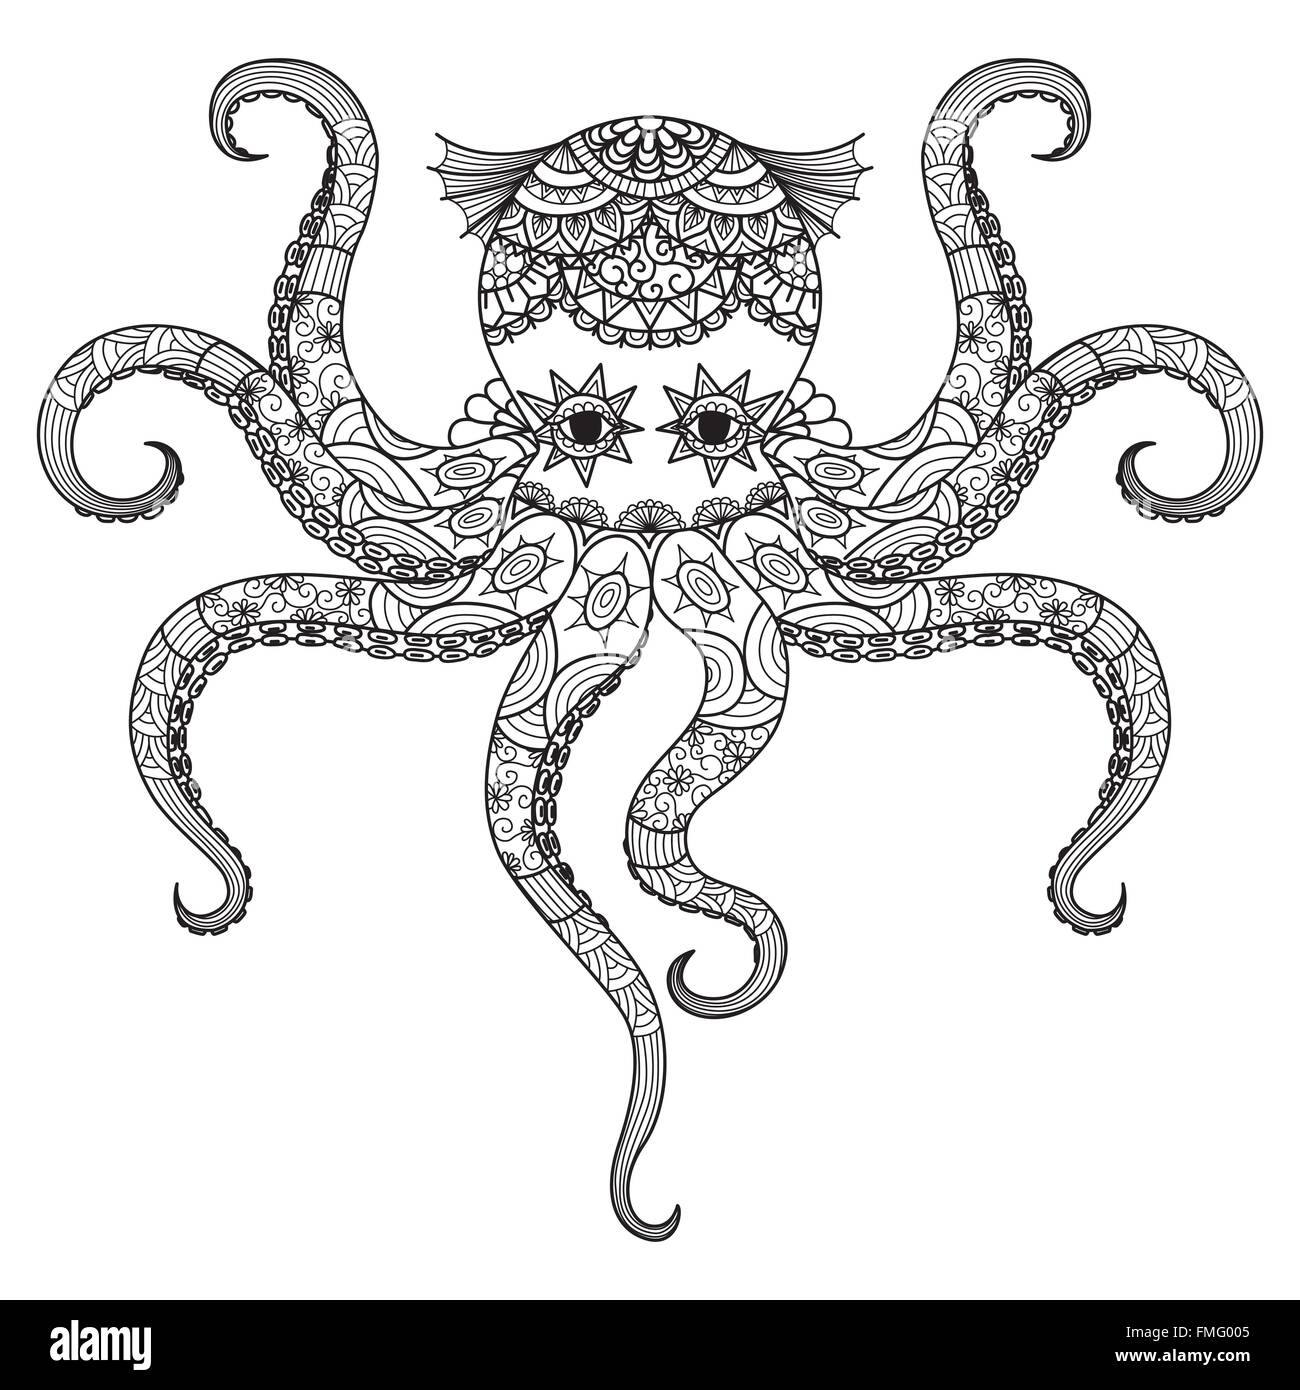 Drawing Octopus Zentangle Design For Coloring Book For Adult Tattoo